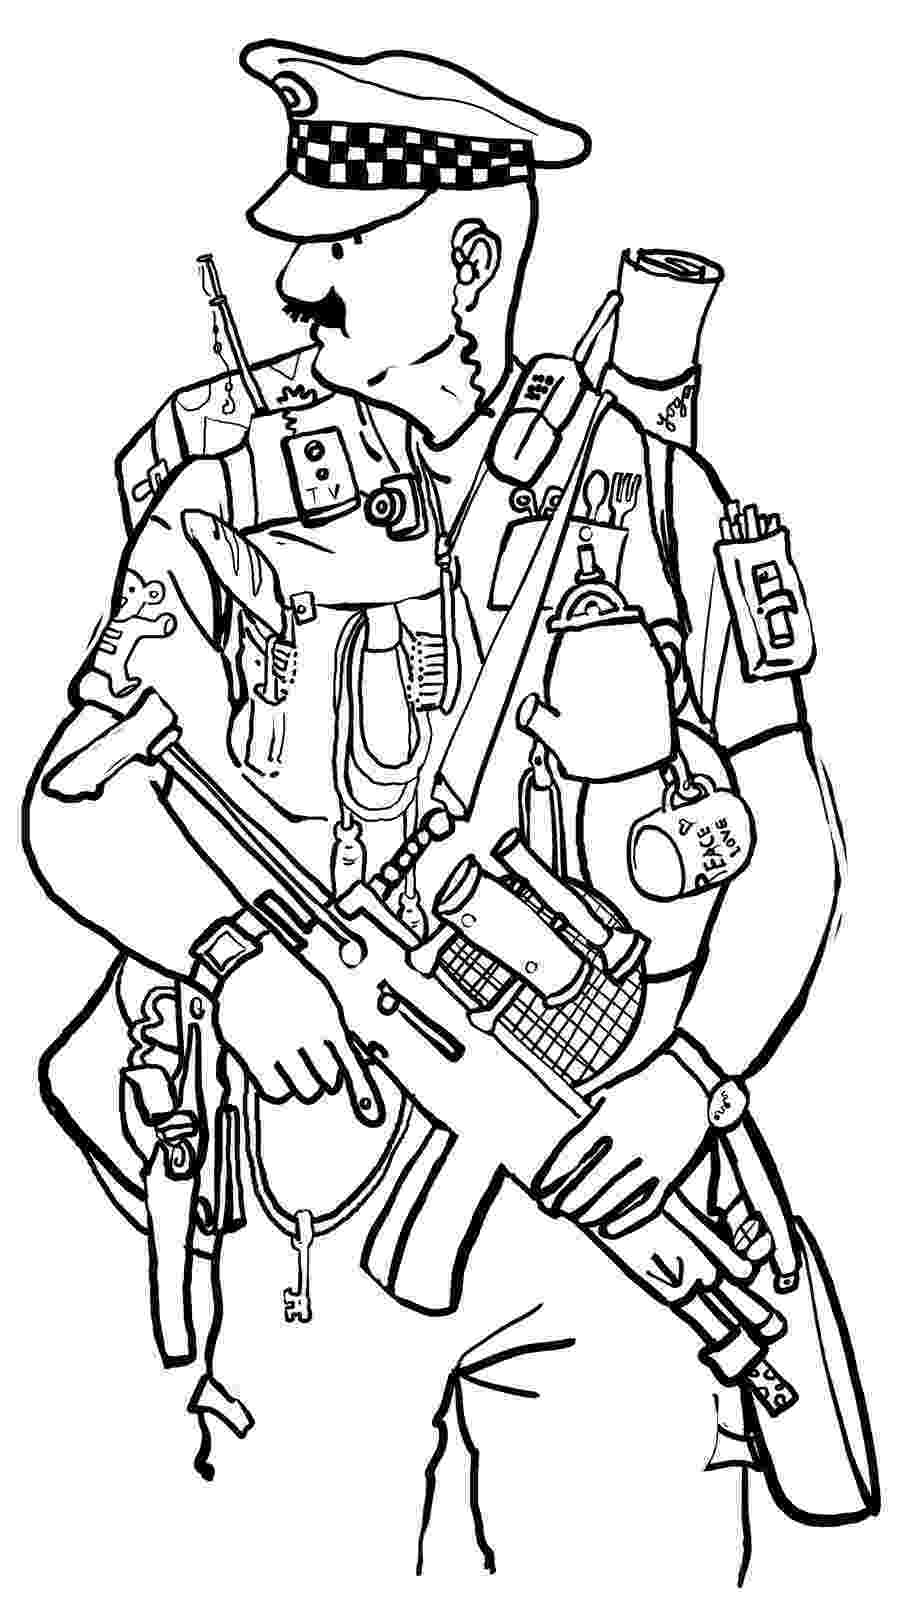 police pictures to color police hero coloring pages coloring pages color police to pictures